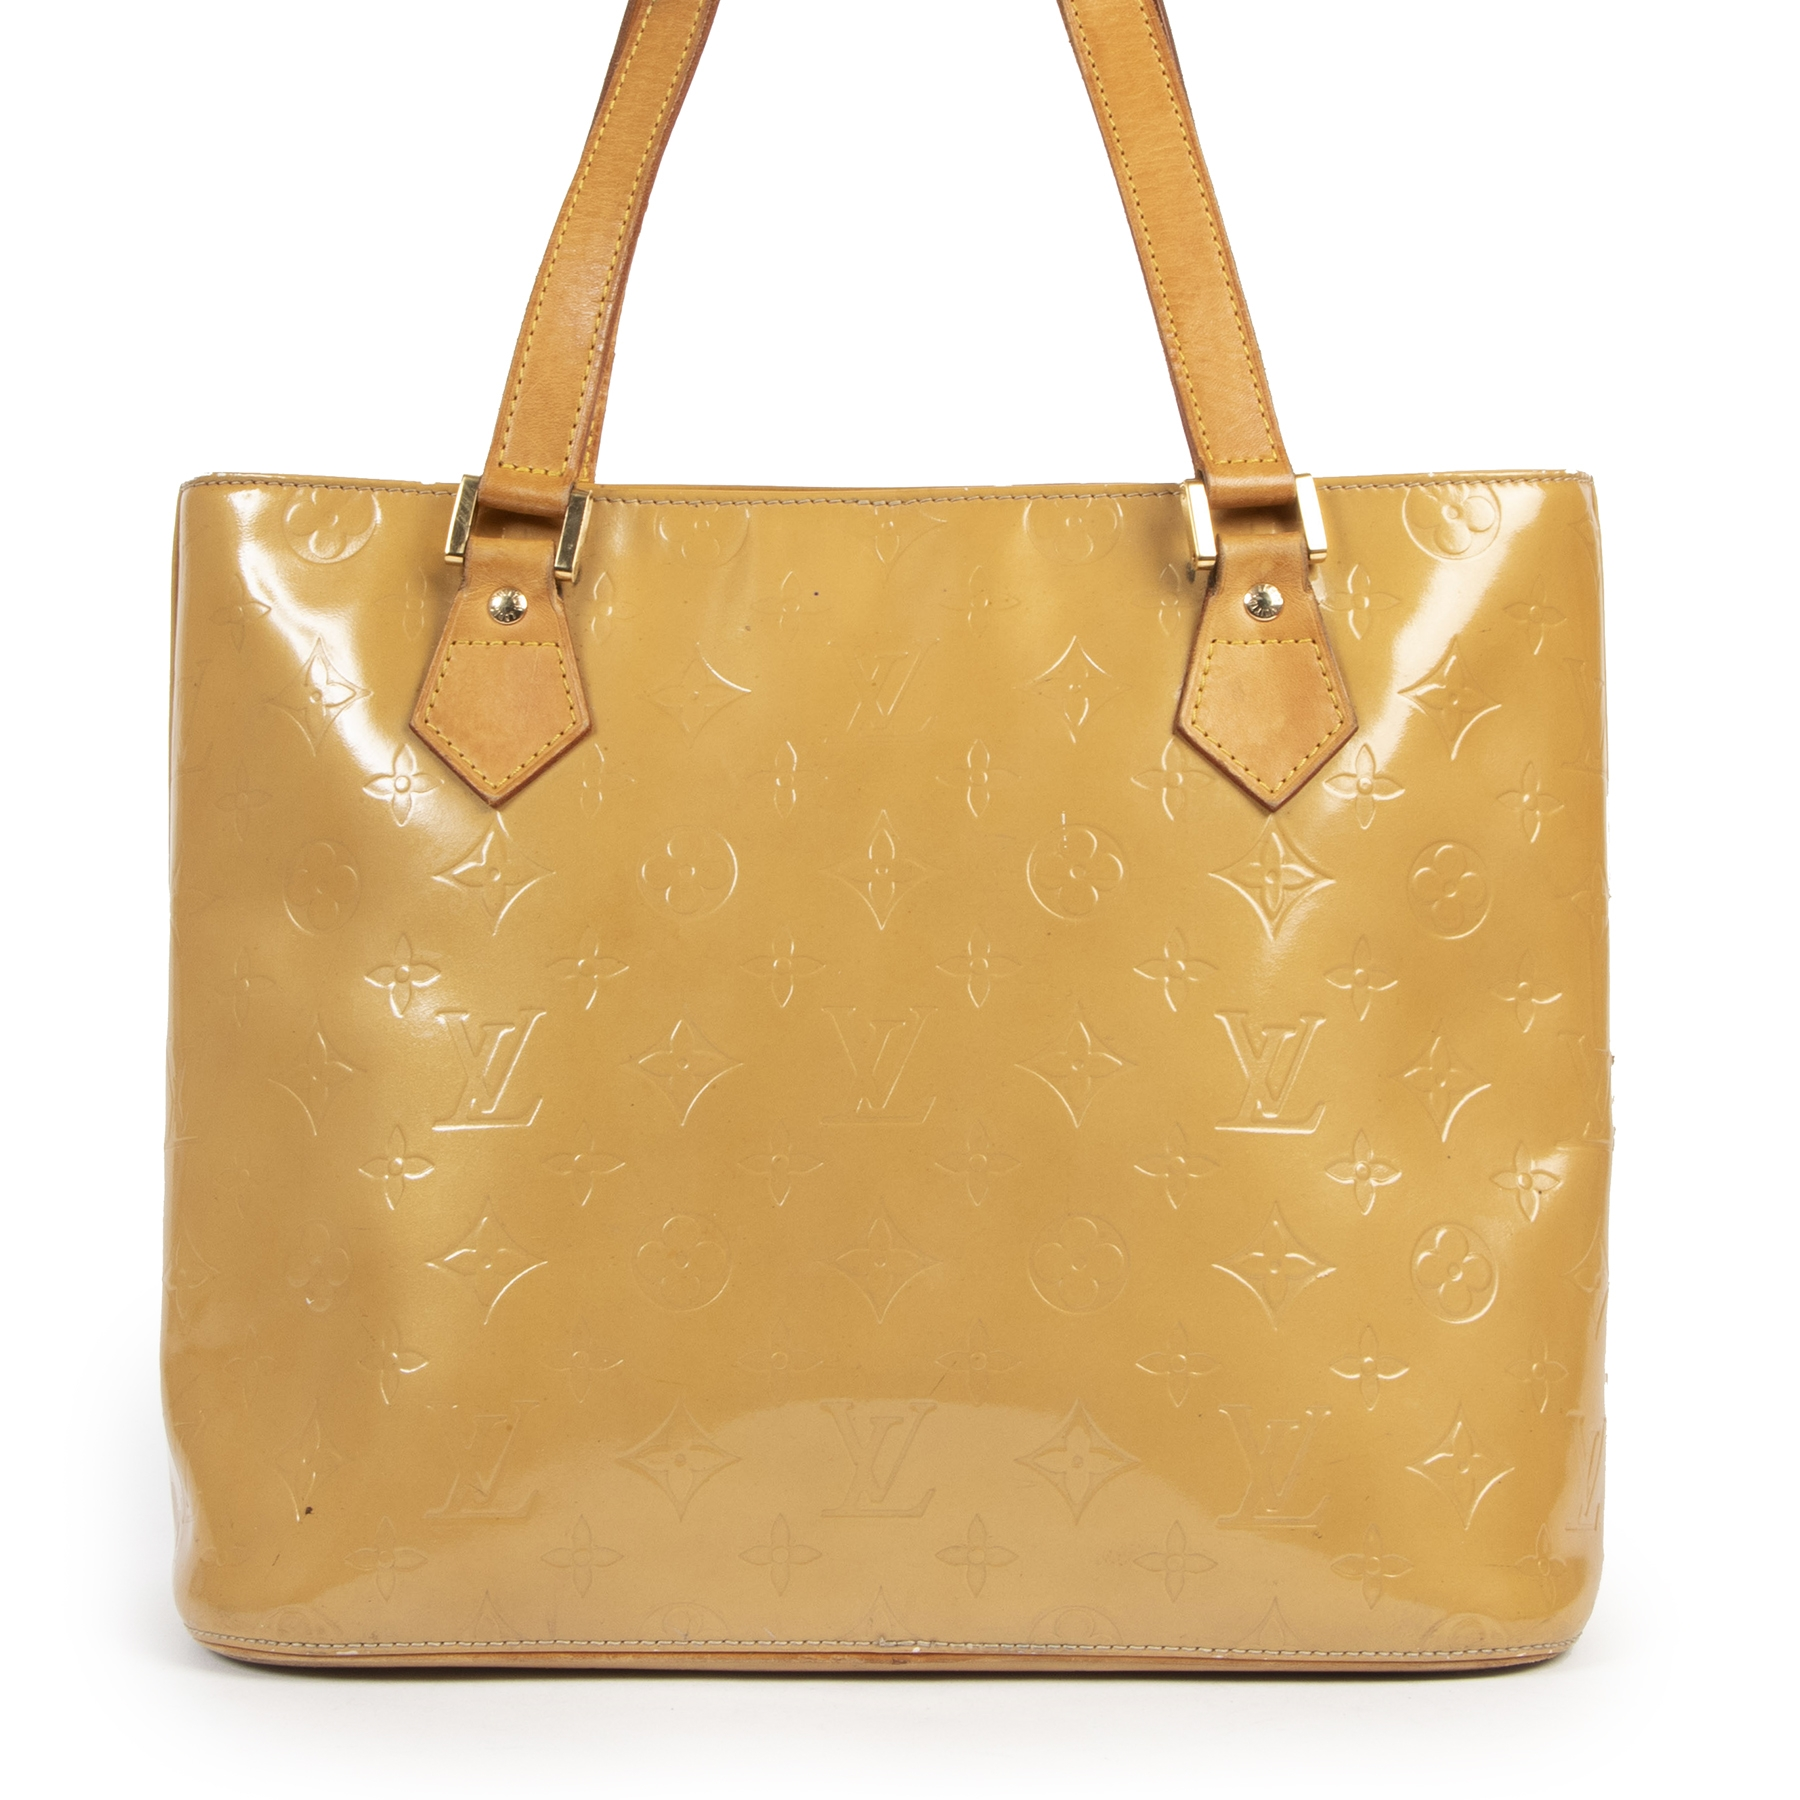 Buy authentic secondhand Louis Vuitton bags at the right price at LabelLOV vintage webshop. Safe and secure online shopping.